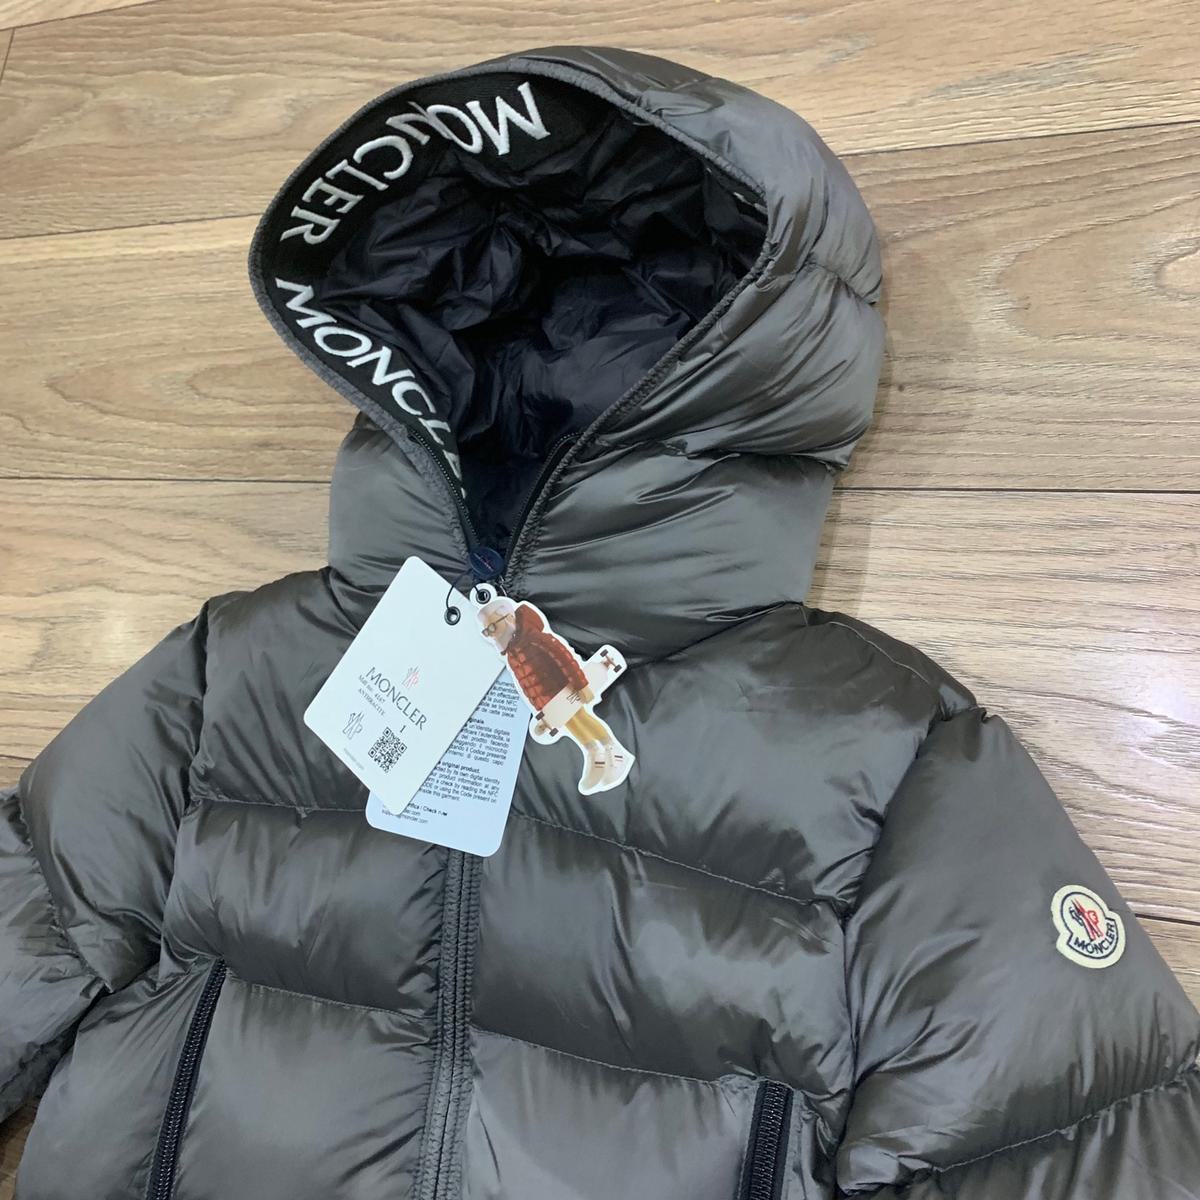 Moncler Men's Jacket Brand New with Tags Size 3 - Fits Large RRP £1250  This is 1:1 - Perfect Condition  Paid £350 on eBay but would just like a quick sale.  Any queries please message me.